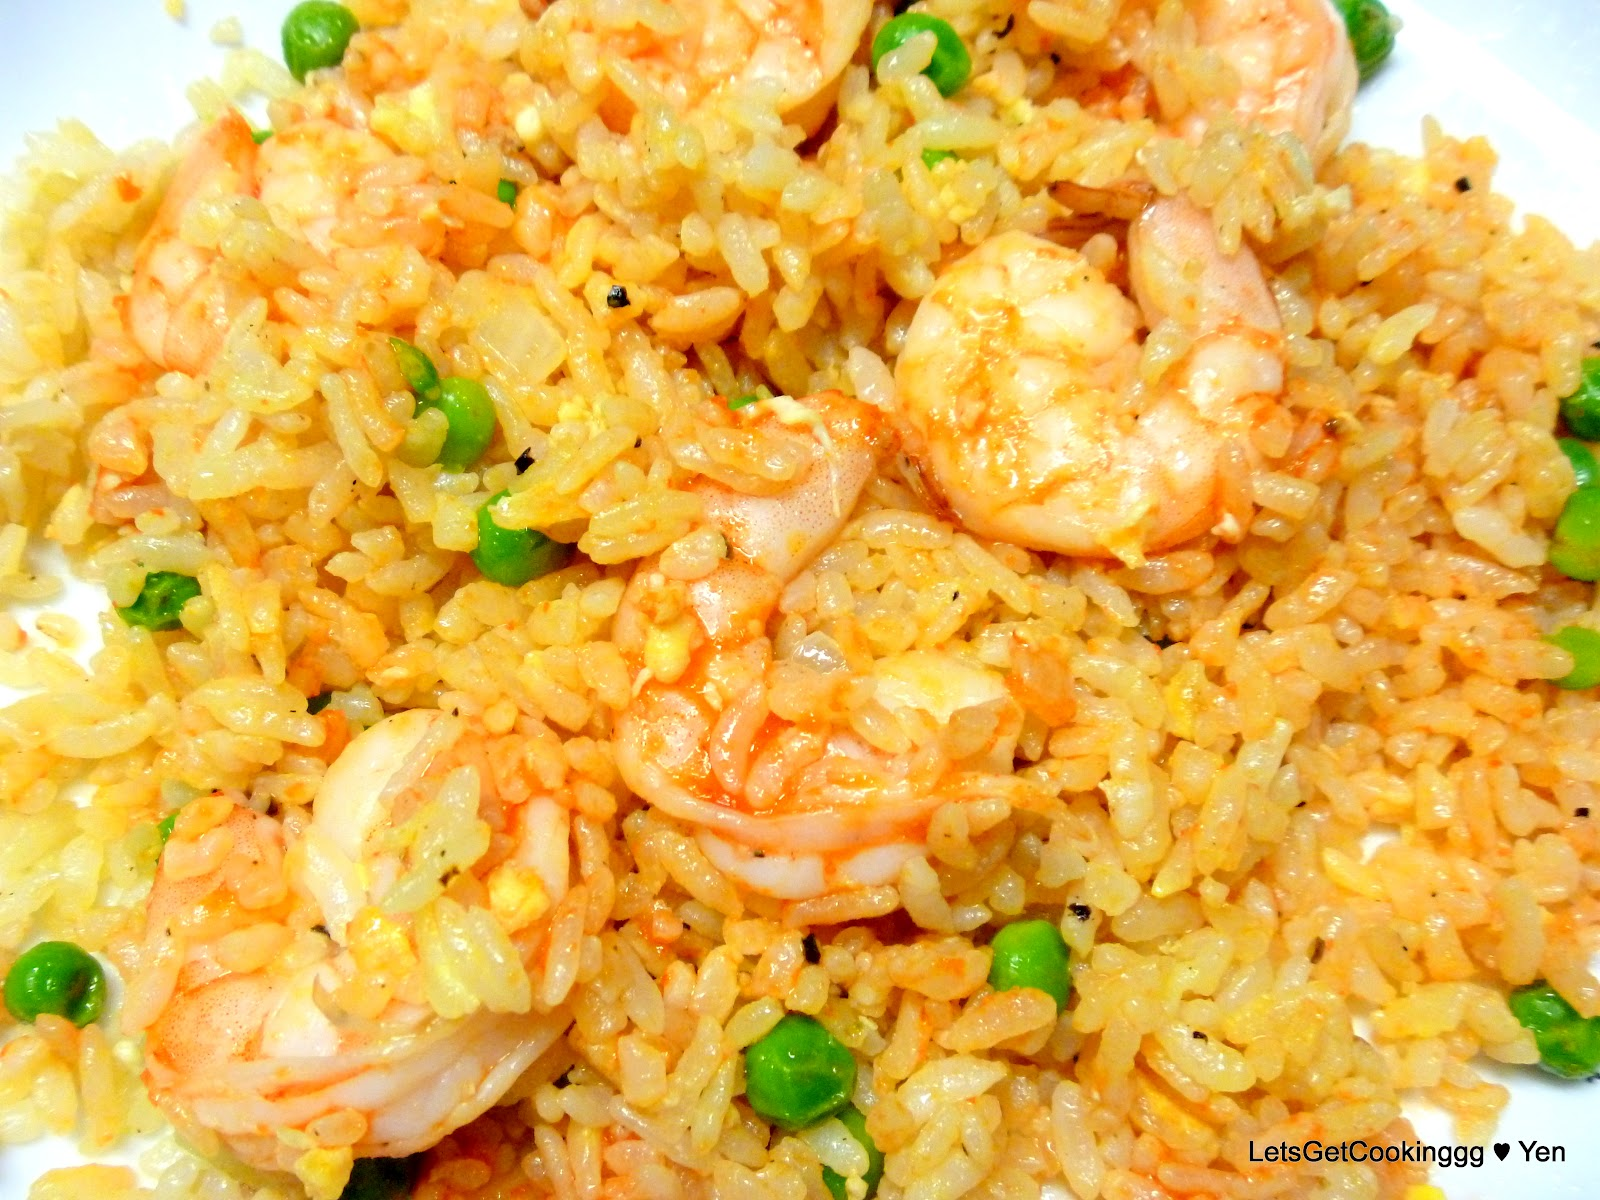 LetsGetCookinggg ♥ Yen: Shrimp Fried Rice